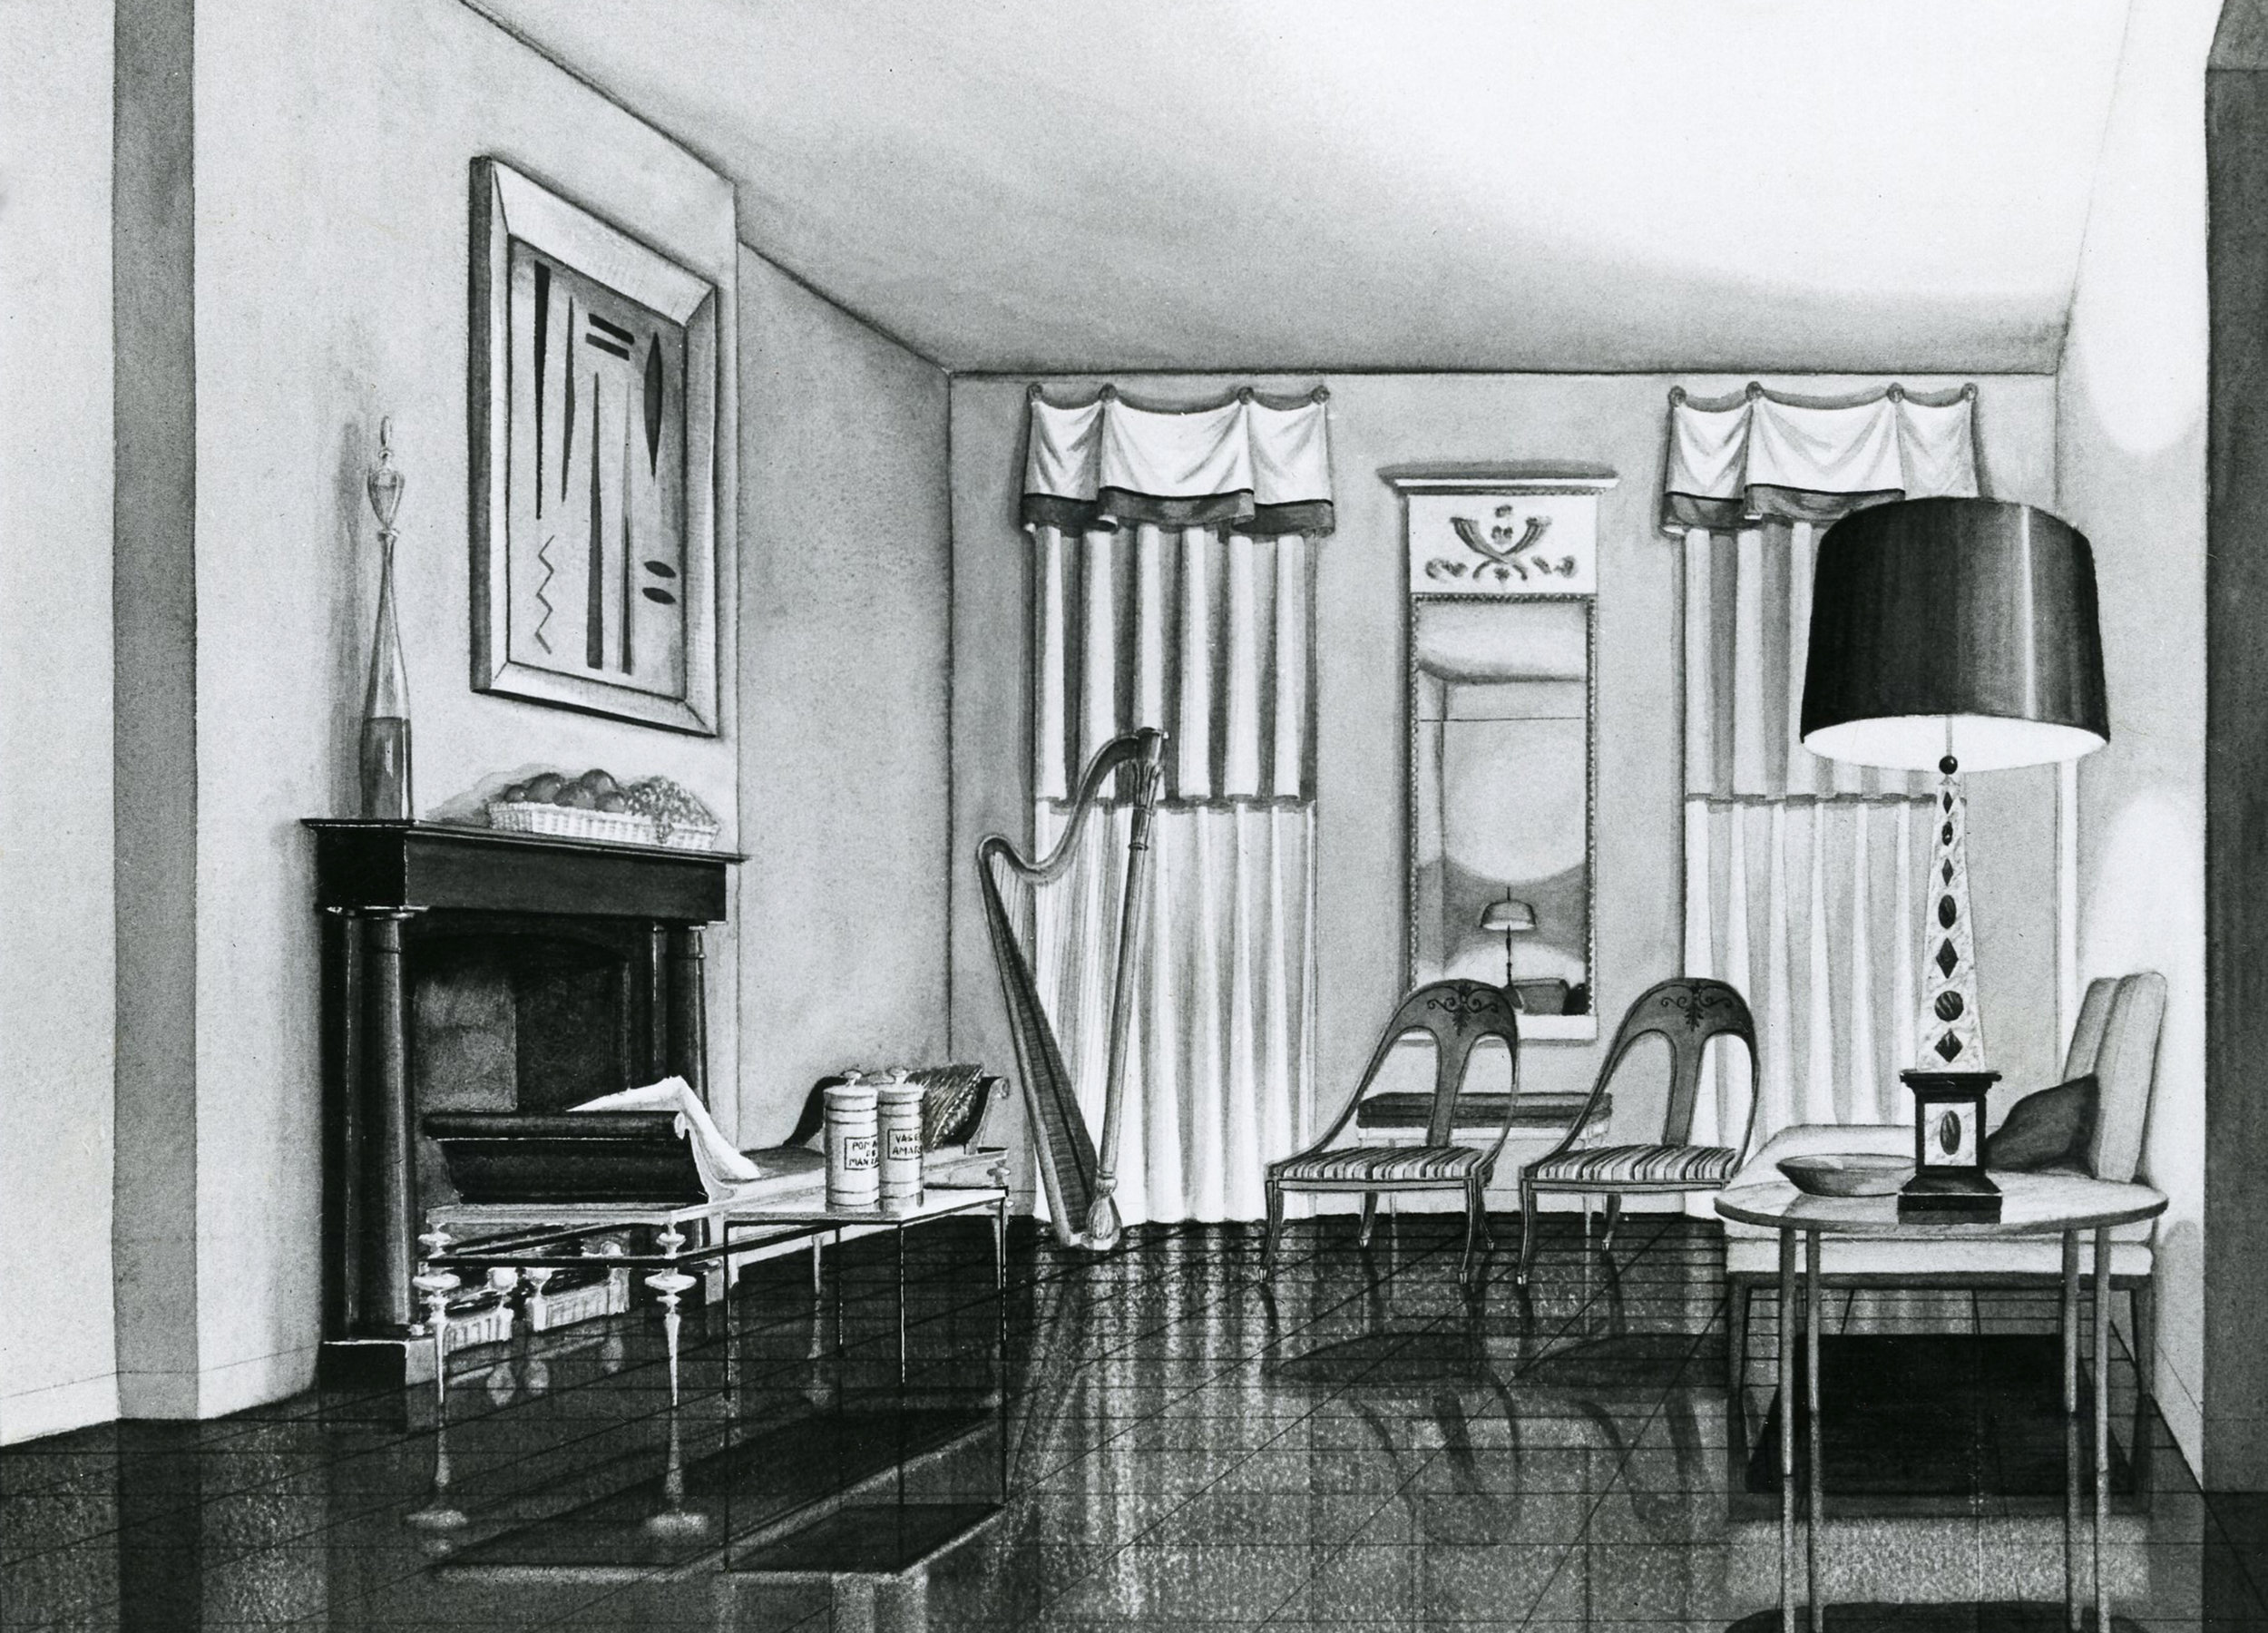 hand-rendering-and-model-of-a-one-room-house-by-gil-velasquez-1953_24118519619_o.jpg